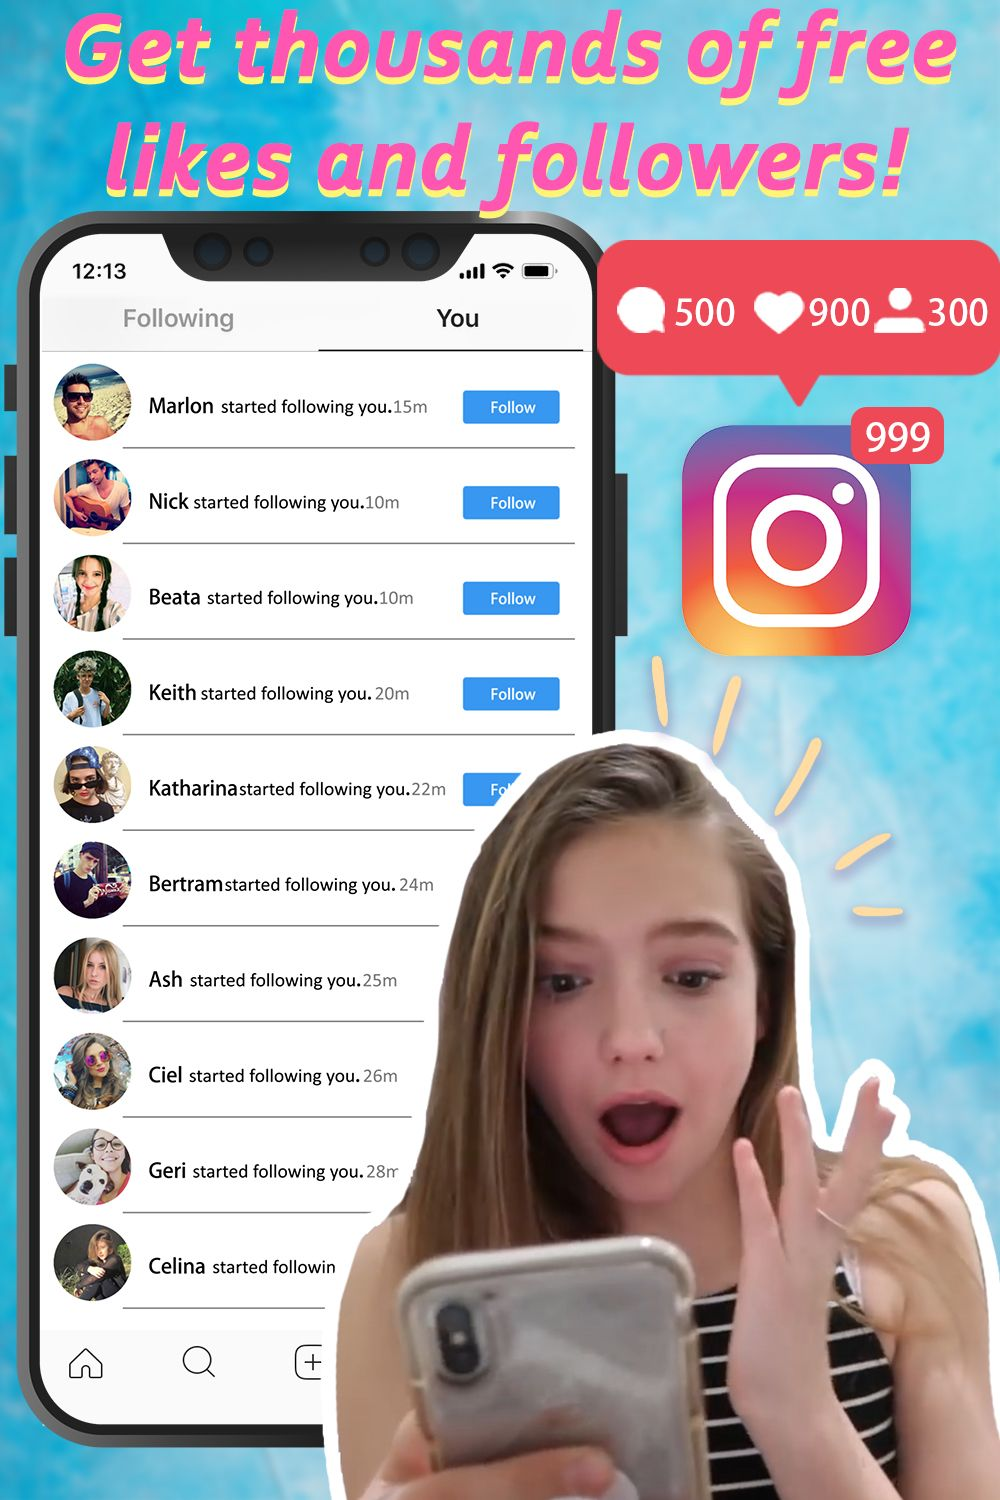 Get more real Instagram followers and likes! an IG